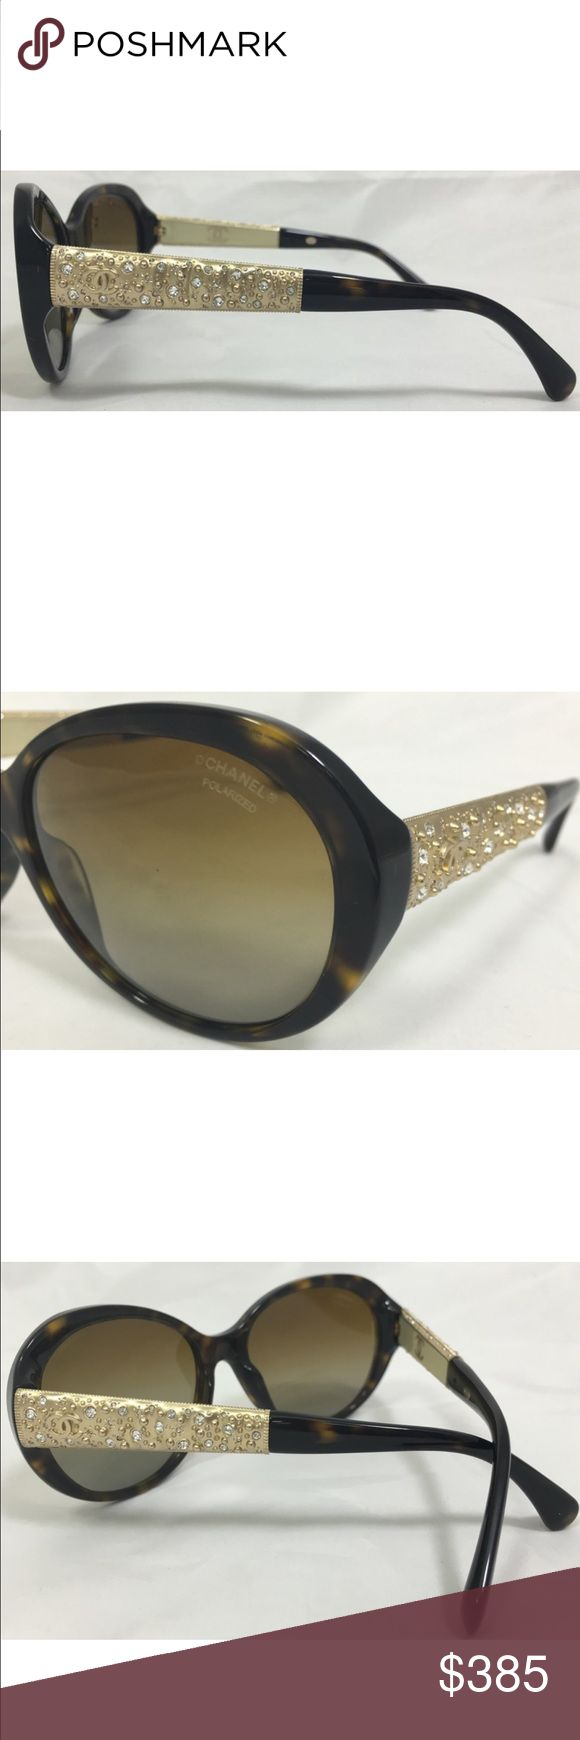 """Chanel Bijou Tortoise gold and crystal polarized Stunning Chanel Bijou Tortoise gold and crystal polarized glasses. Case included. In great condition. Show stopping and classy sunglasses.  58mm 5""""Lx2""""Hx5""""W frame color Tortoise. Lens color brown gradient CHANEL Accessories Sunglasses"""